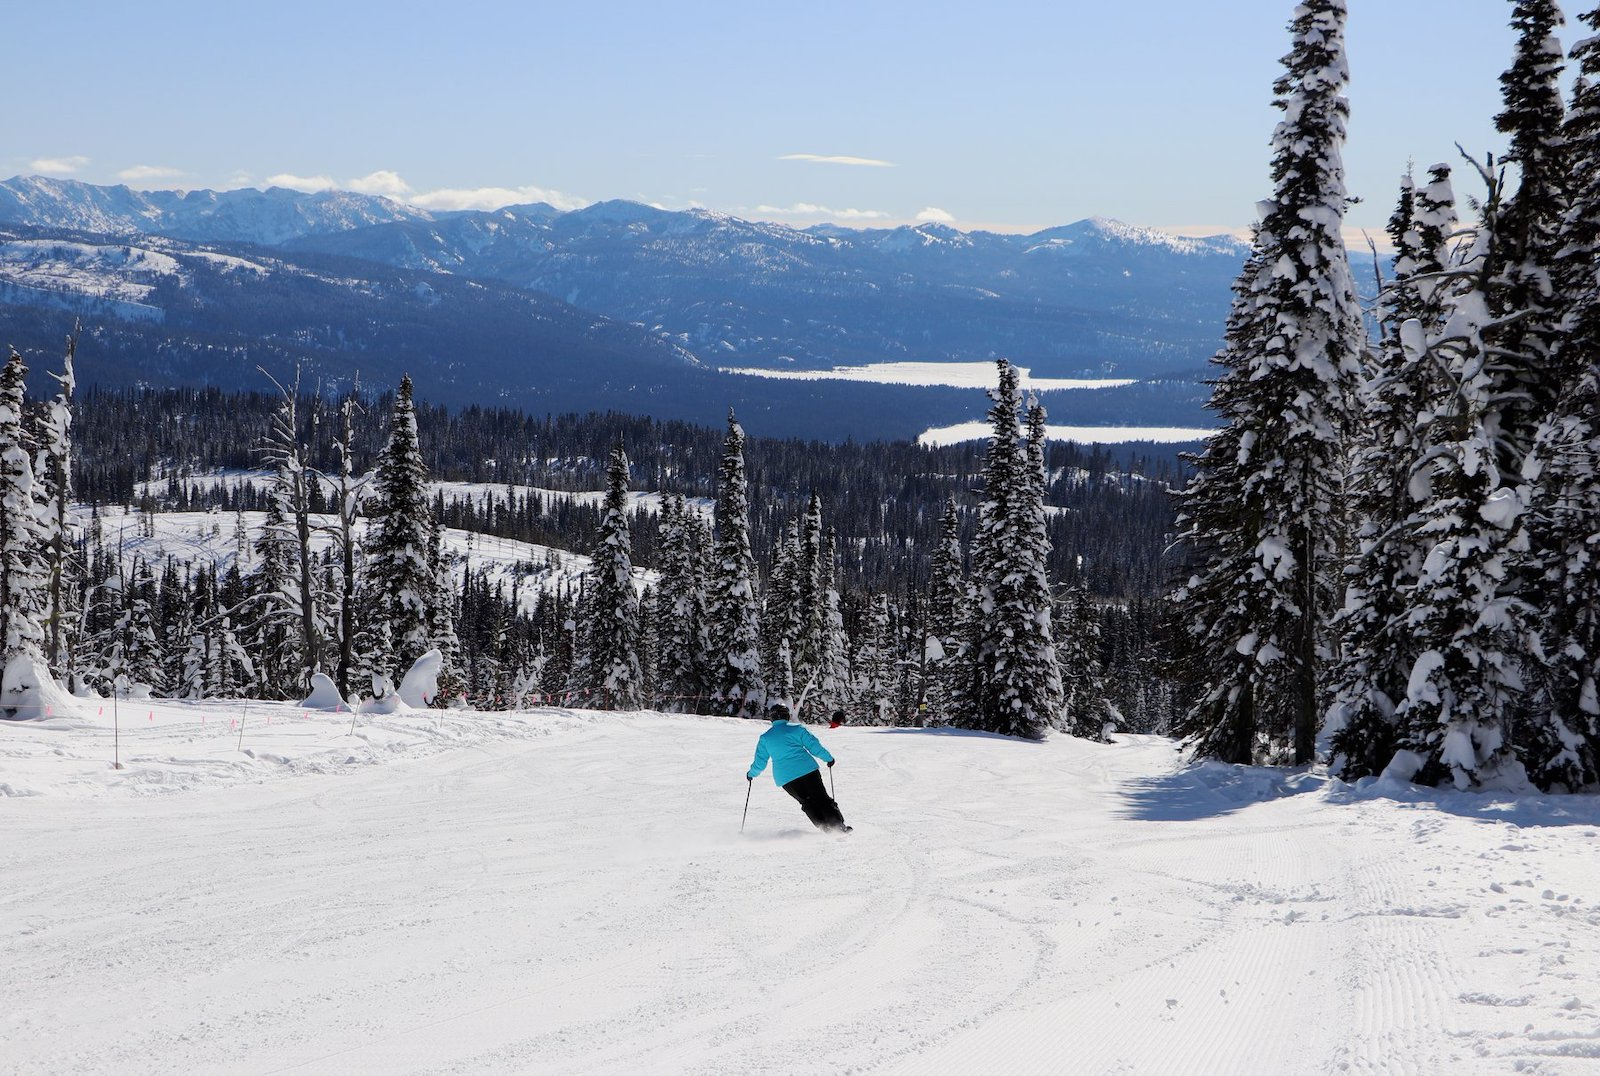 Image of a solo skier in blue going down the slopes at Brundage Mountain Ski Resort in Idaho